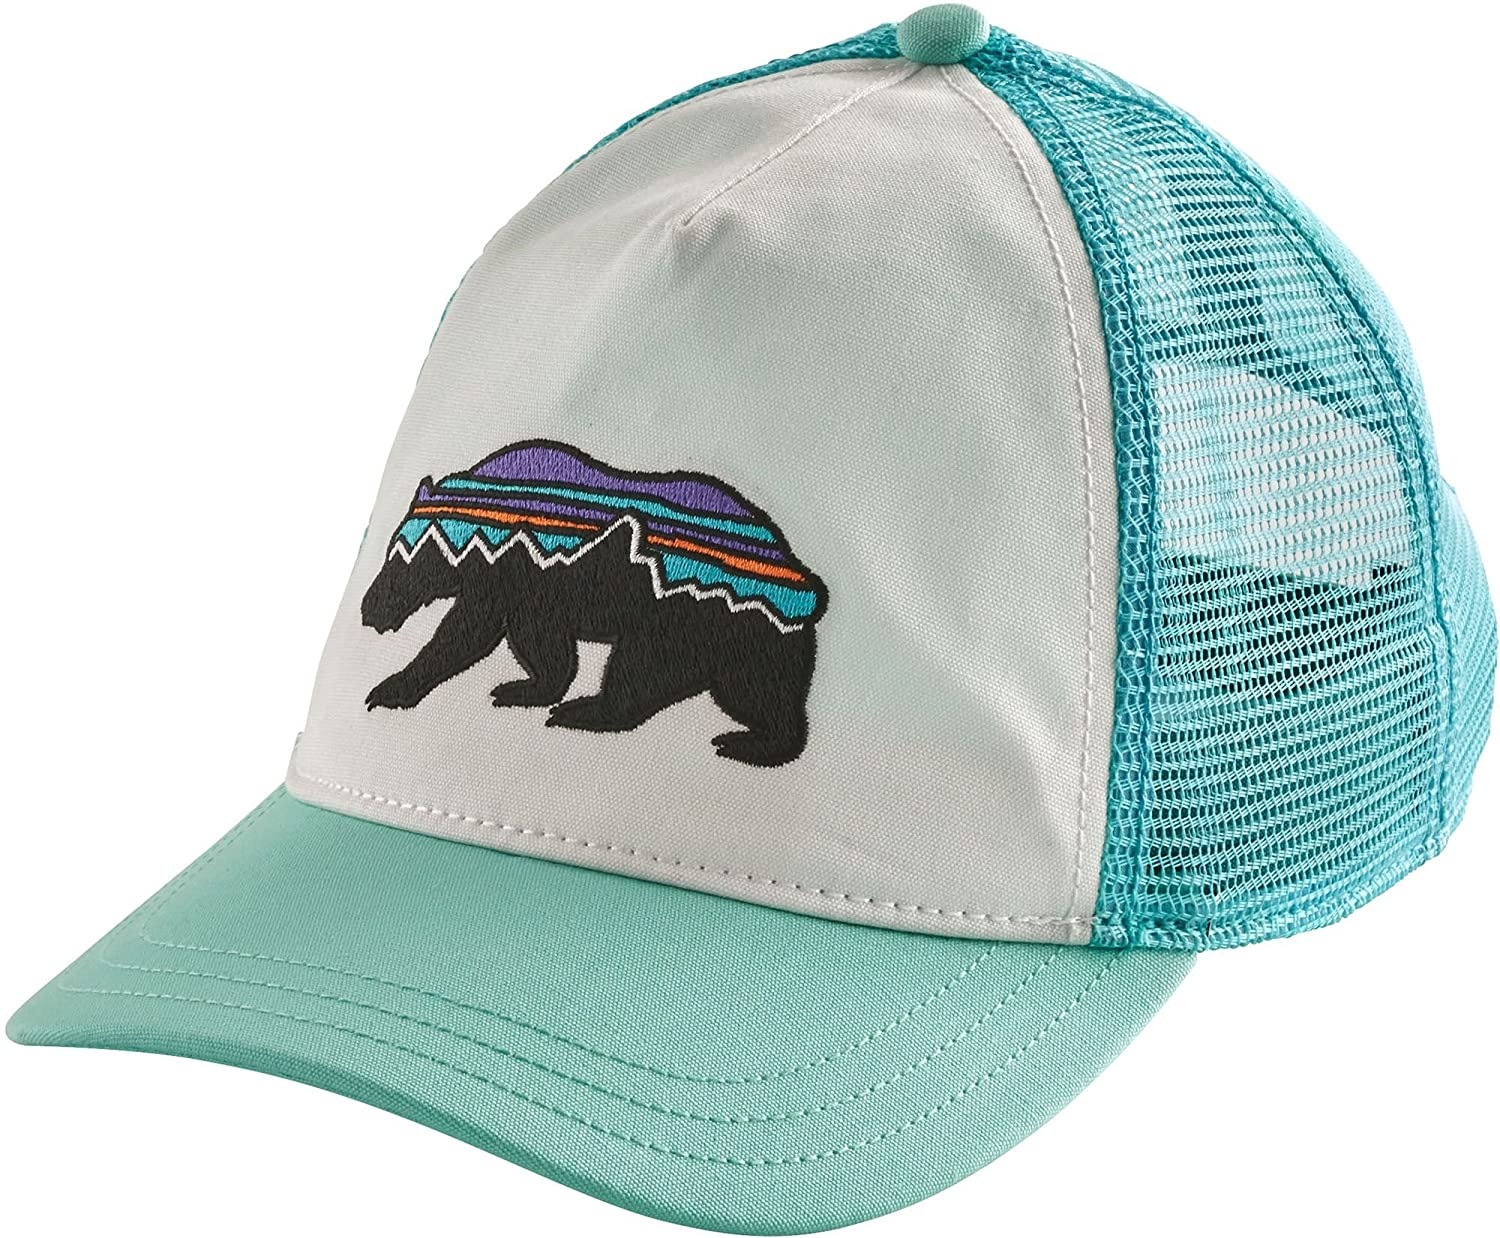 online store 905a7 e5c02 Amazon.com  Patagonia Women s Fitz Roy Bear Trucker Hat (One Size,  White Bend Blue)  Sports   Outdoors